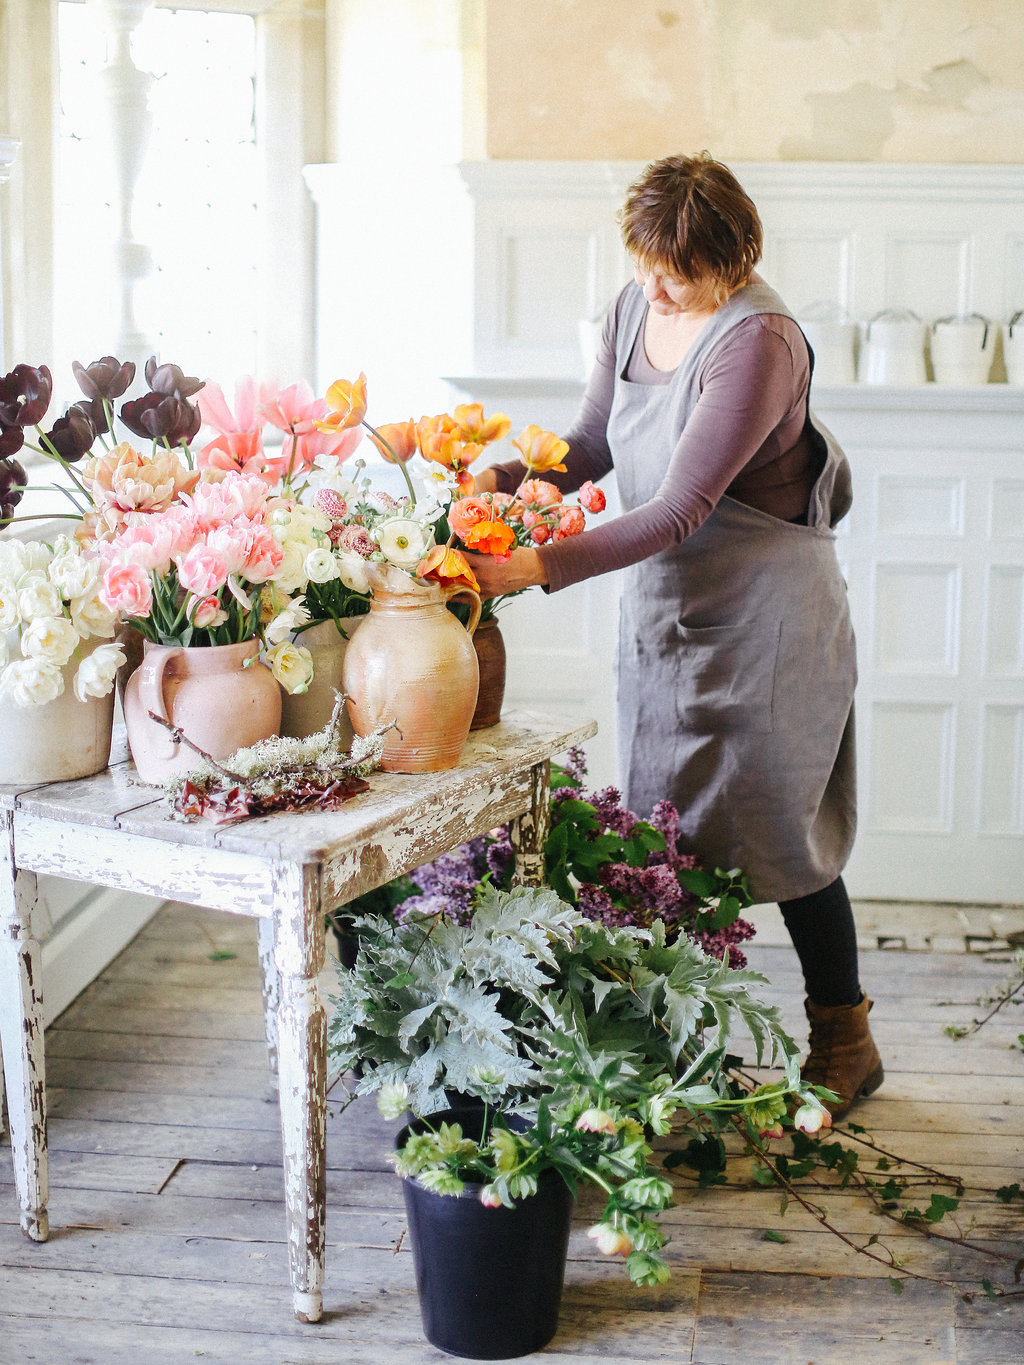 Fiona demonstrating with spring flowers